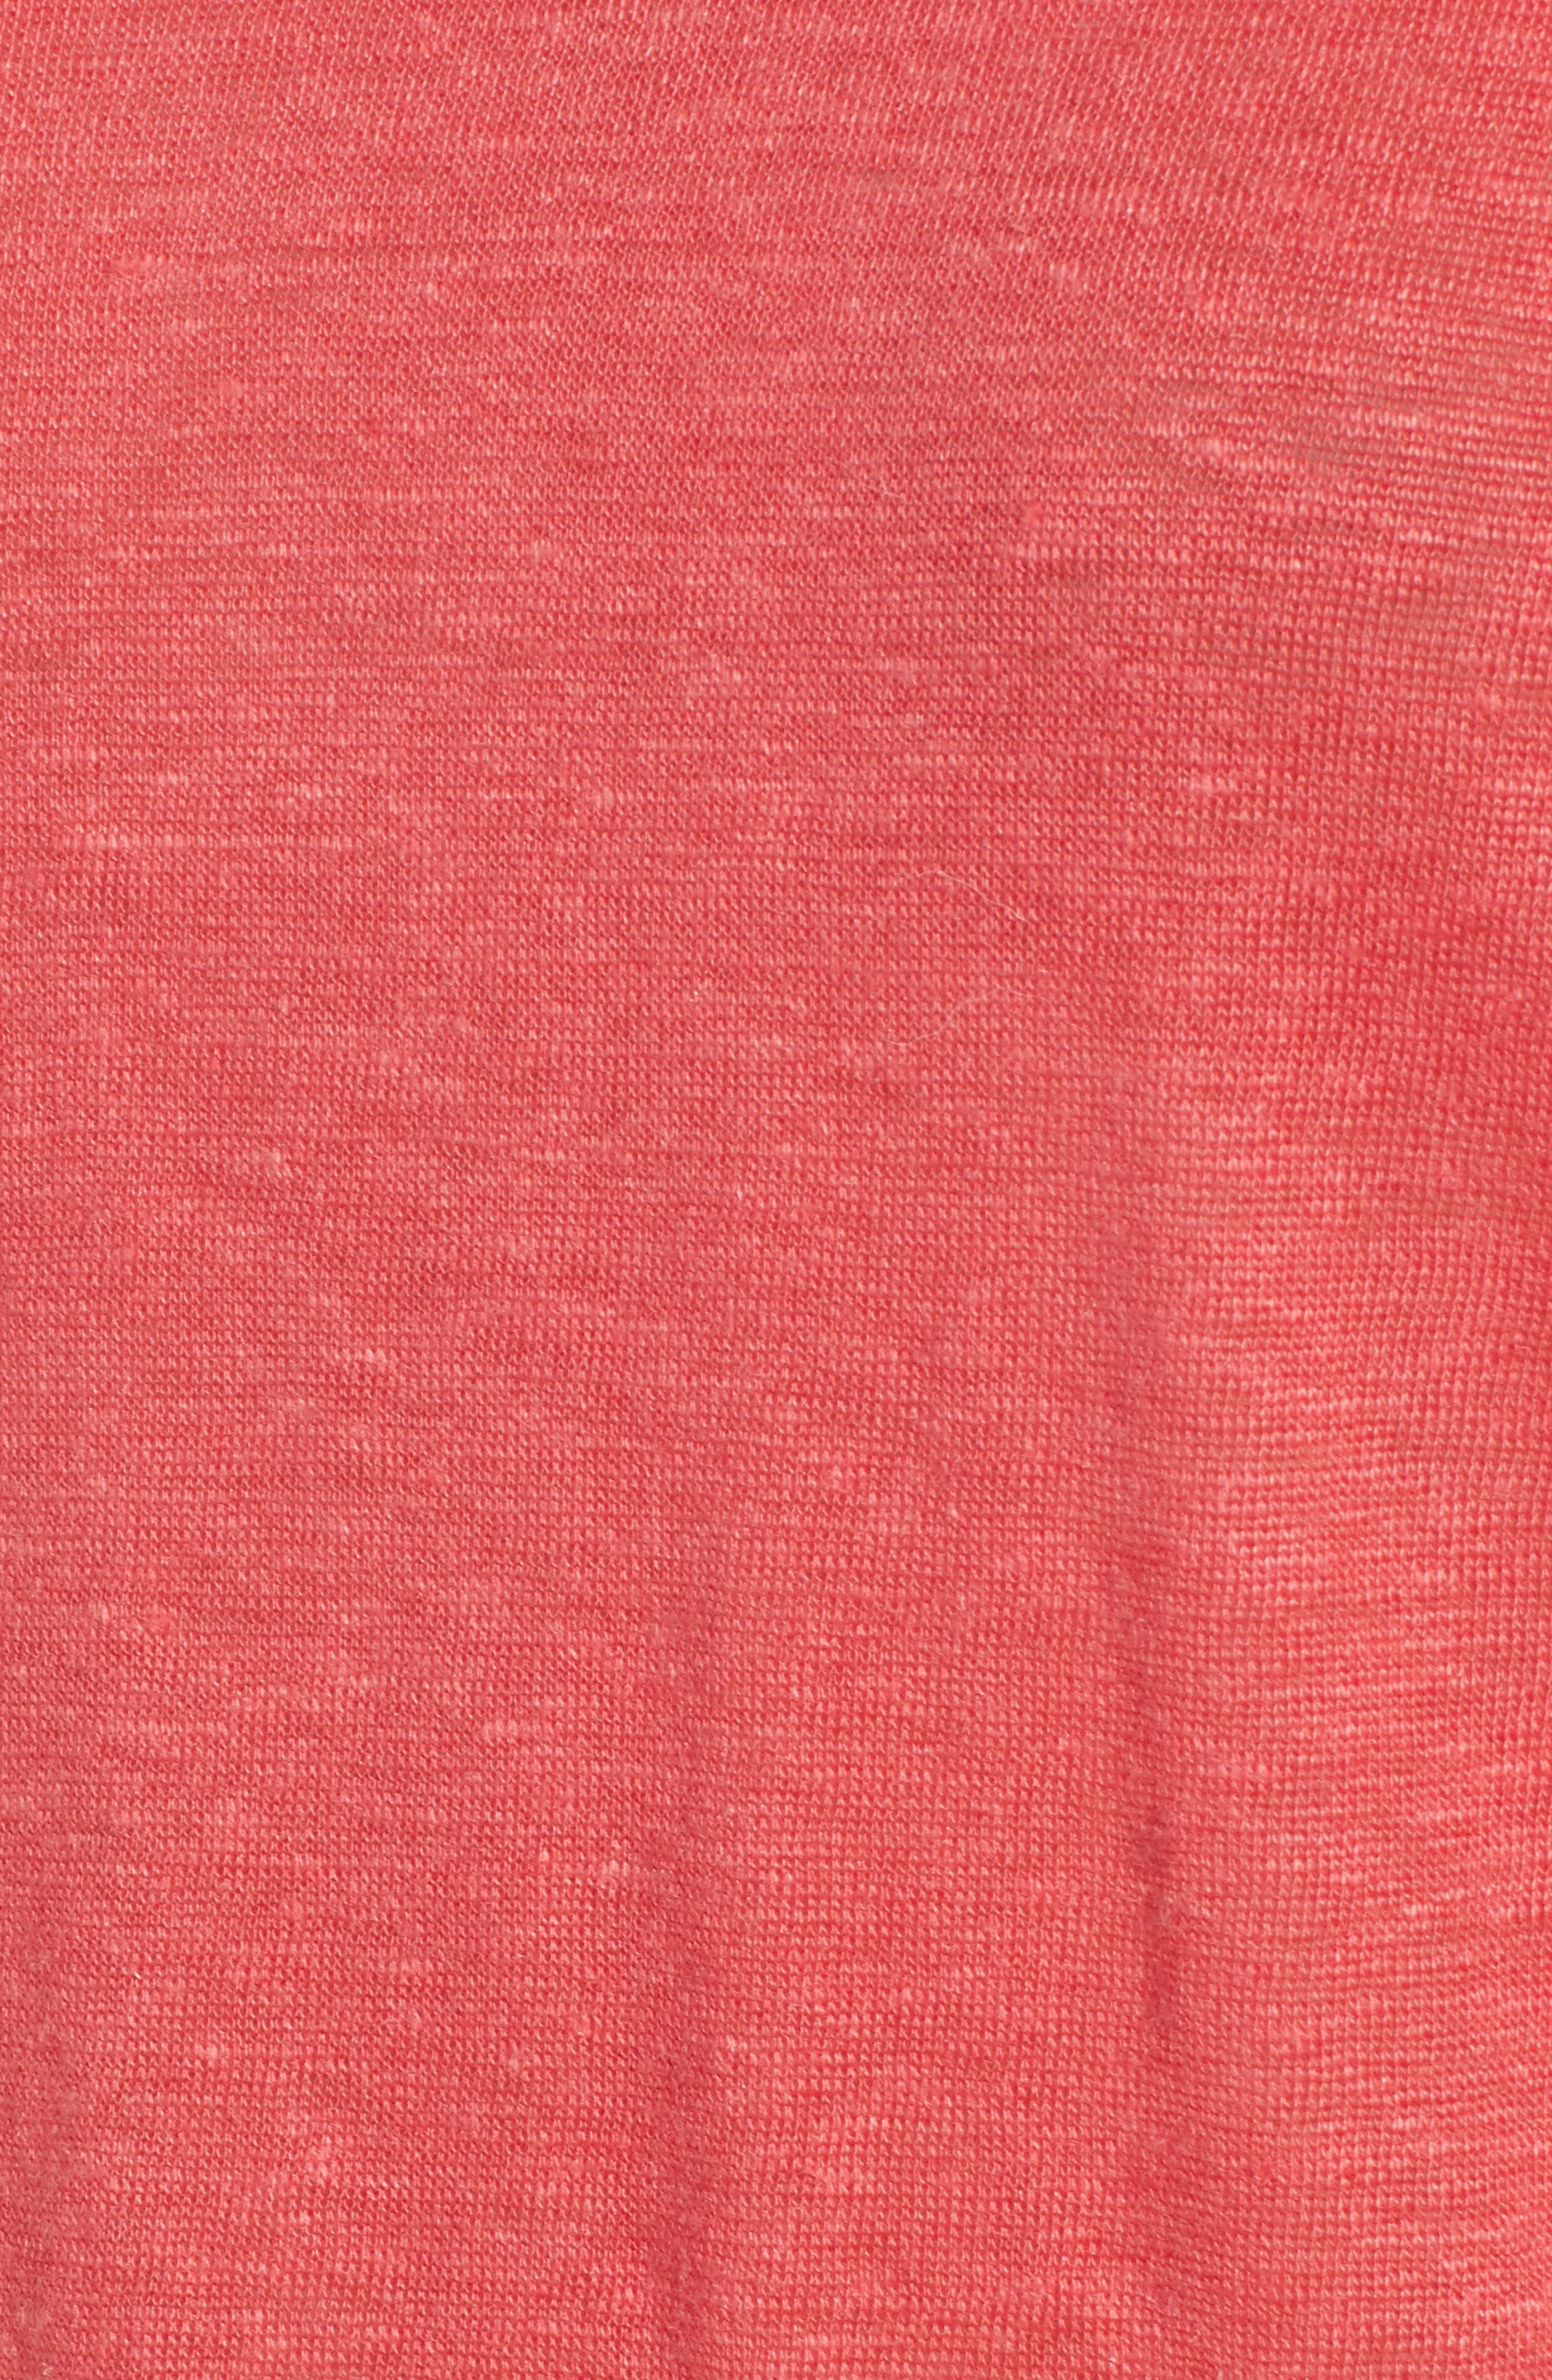 Ruffle Linen Tee,                             Alternate thumbnail 6, color,                             DARK CORAL REEF